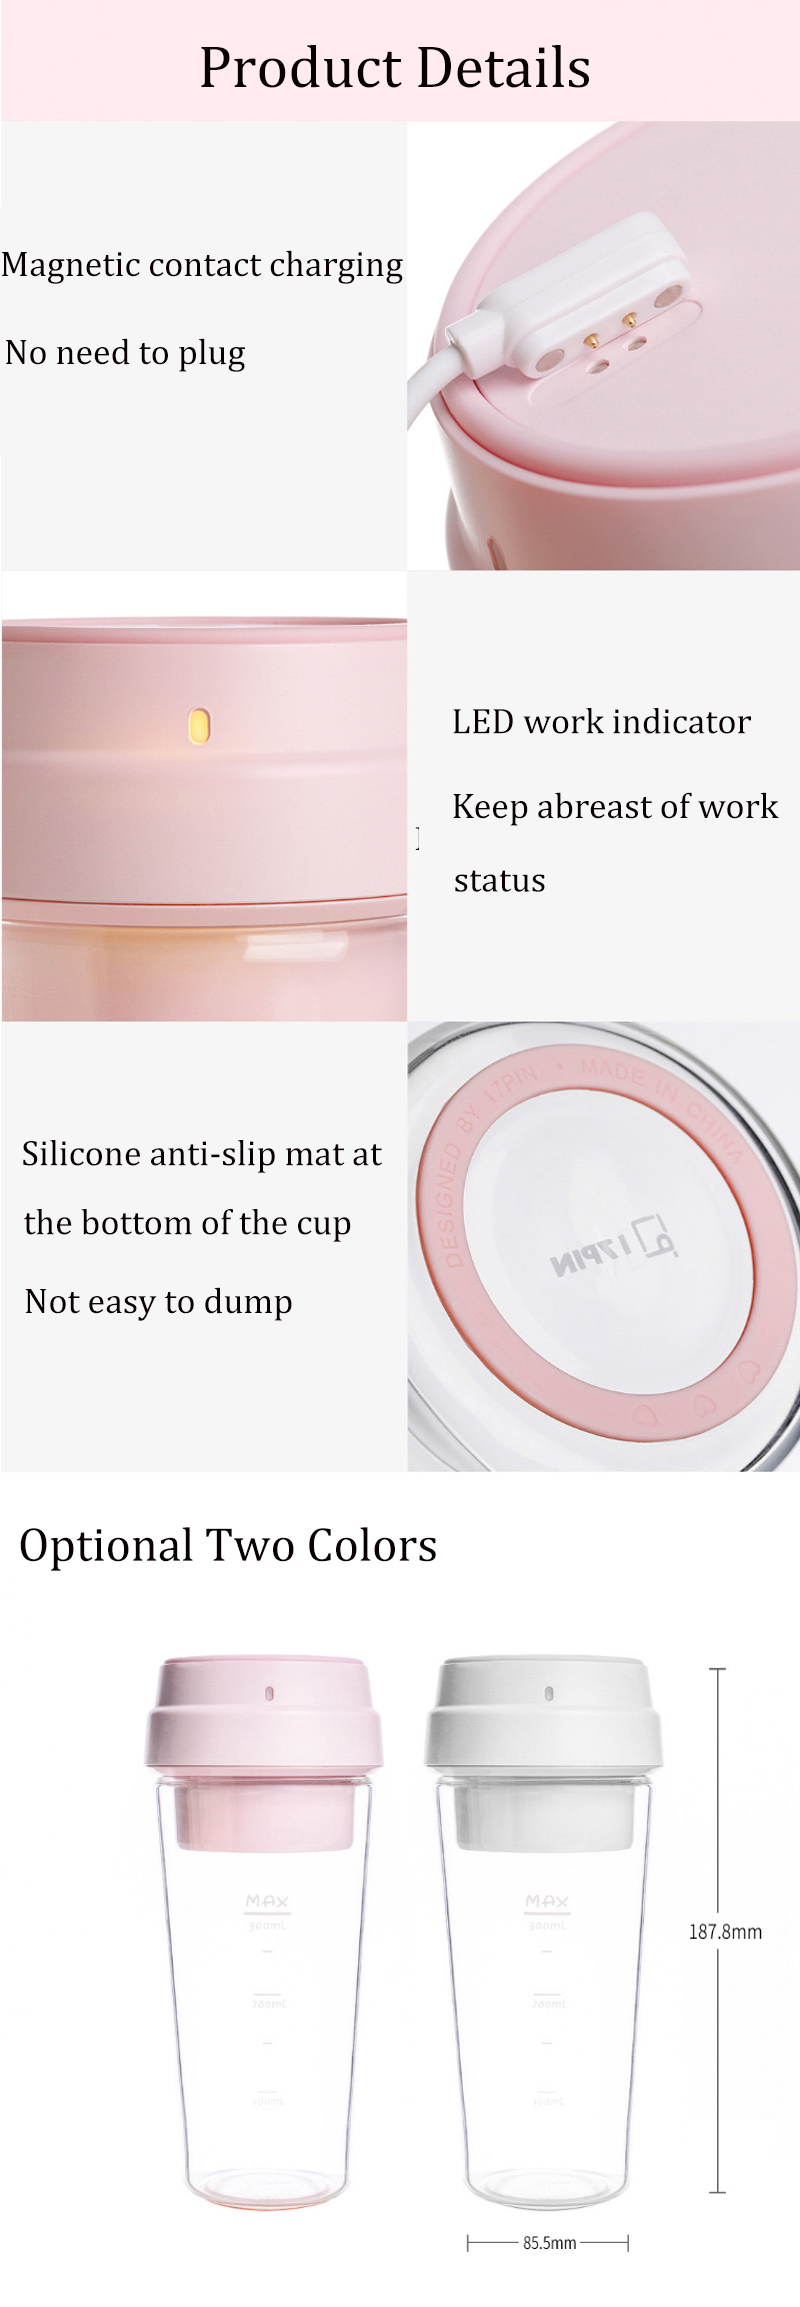 For Xiaomi 17PIN Star Fruit Cup Portable Juicer 400ML Cup Magnetic Charging